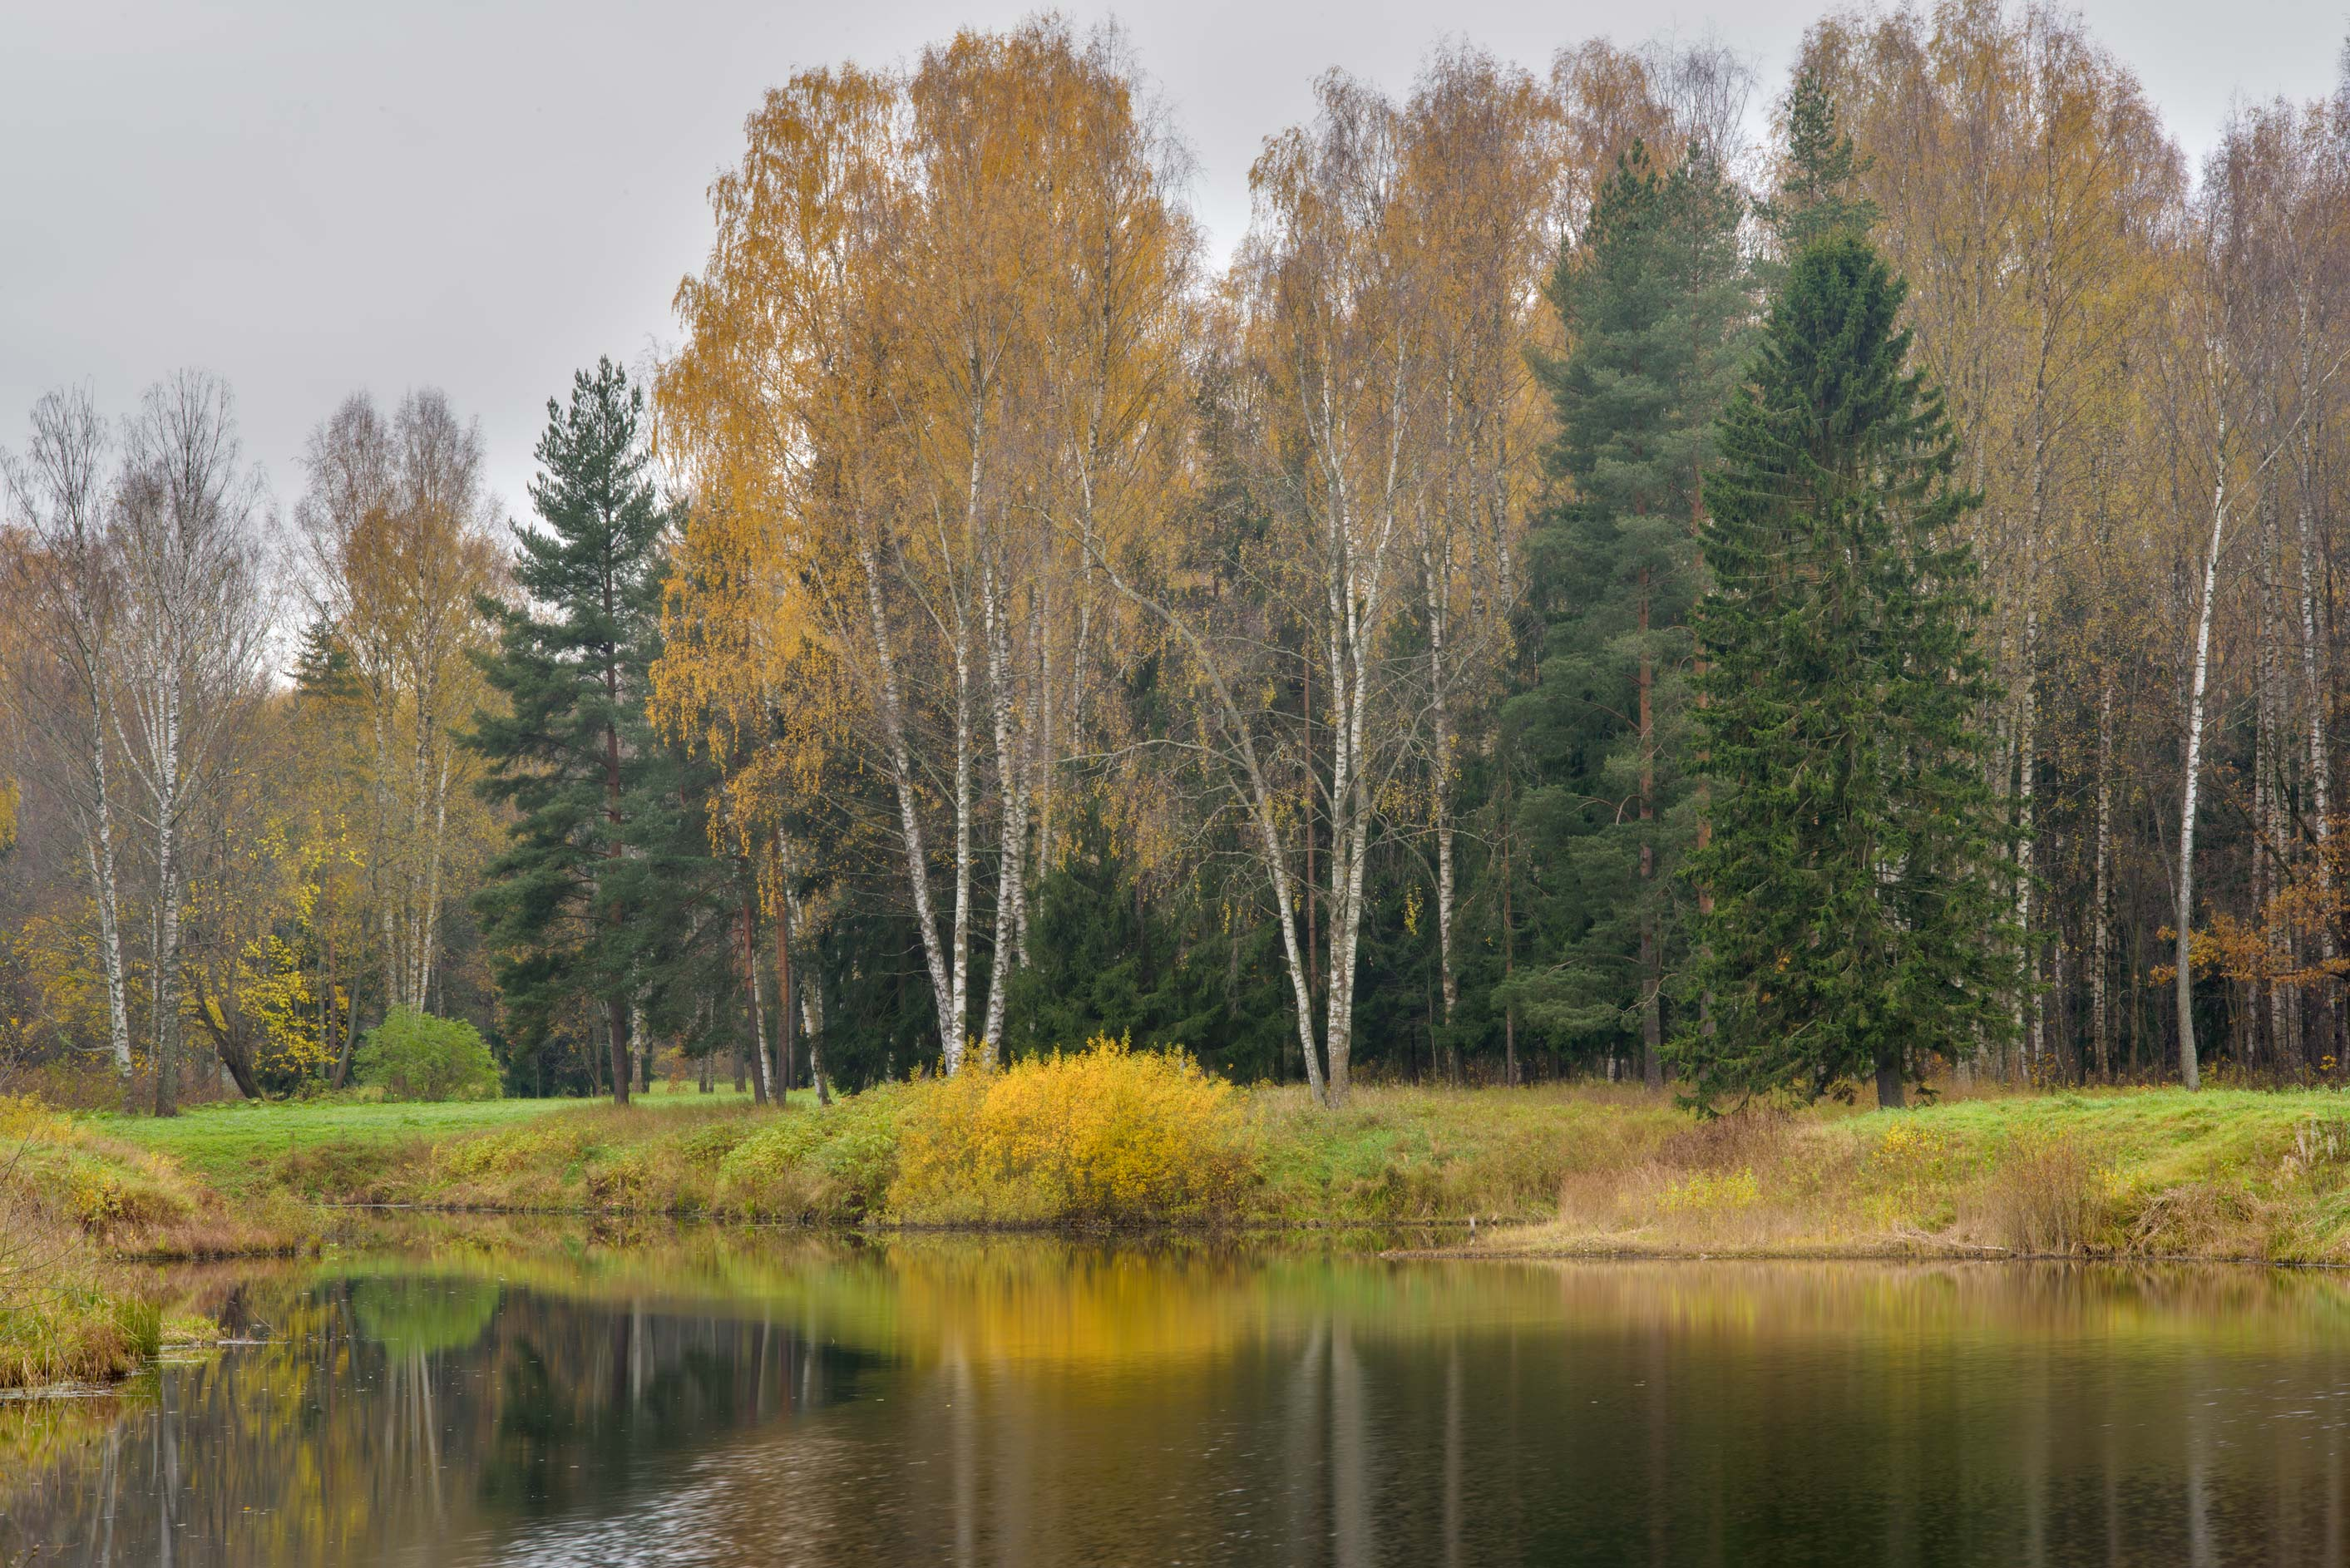 Novoshaleyny Pond from Krasnogo Solntsa Alley in...a suburb of St.Petersburg, Russia